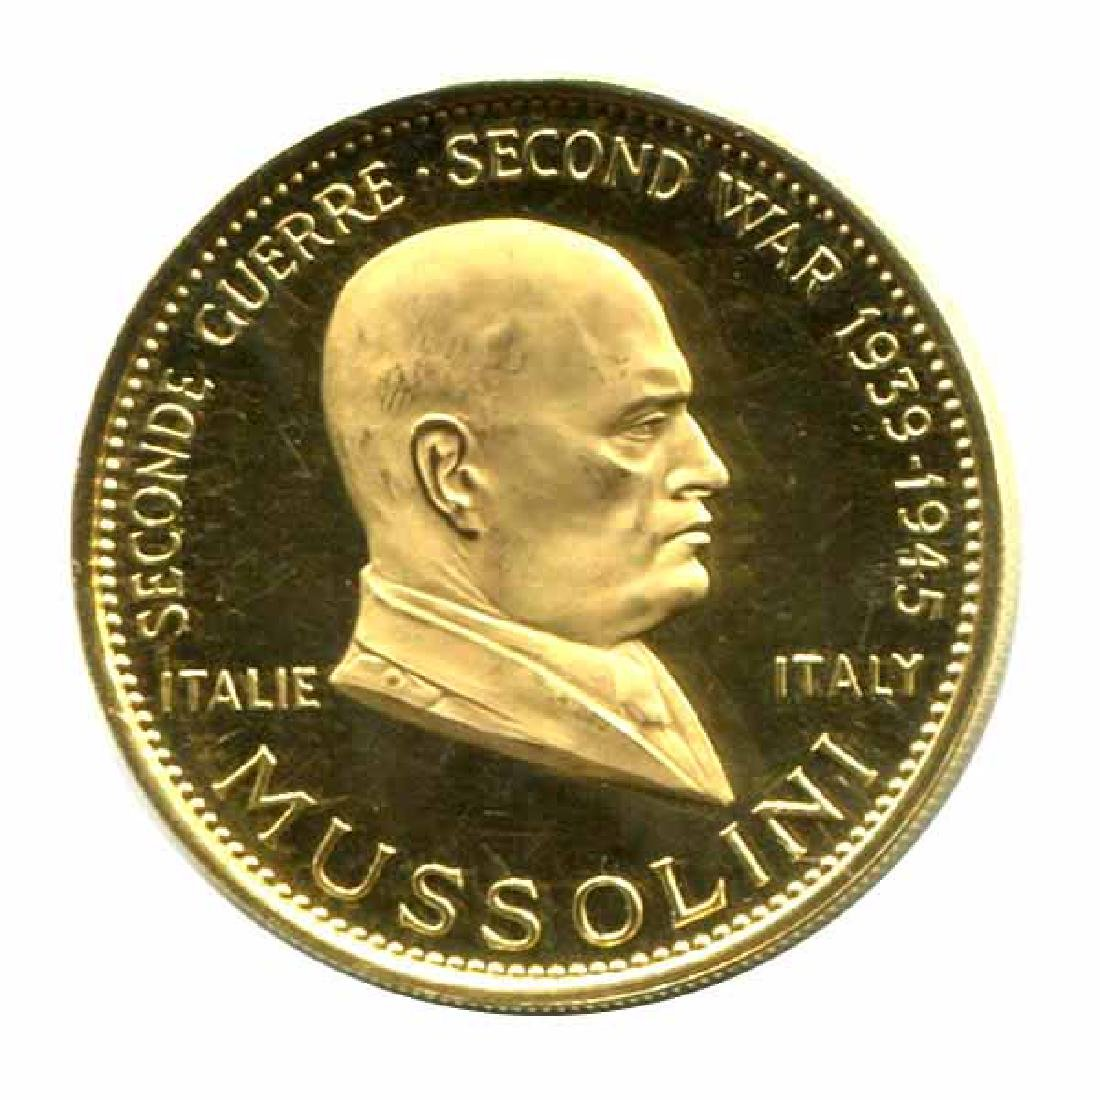 WWII Commemorative Proof Gold Medal 18g. 1958 Mussolini